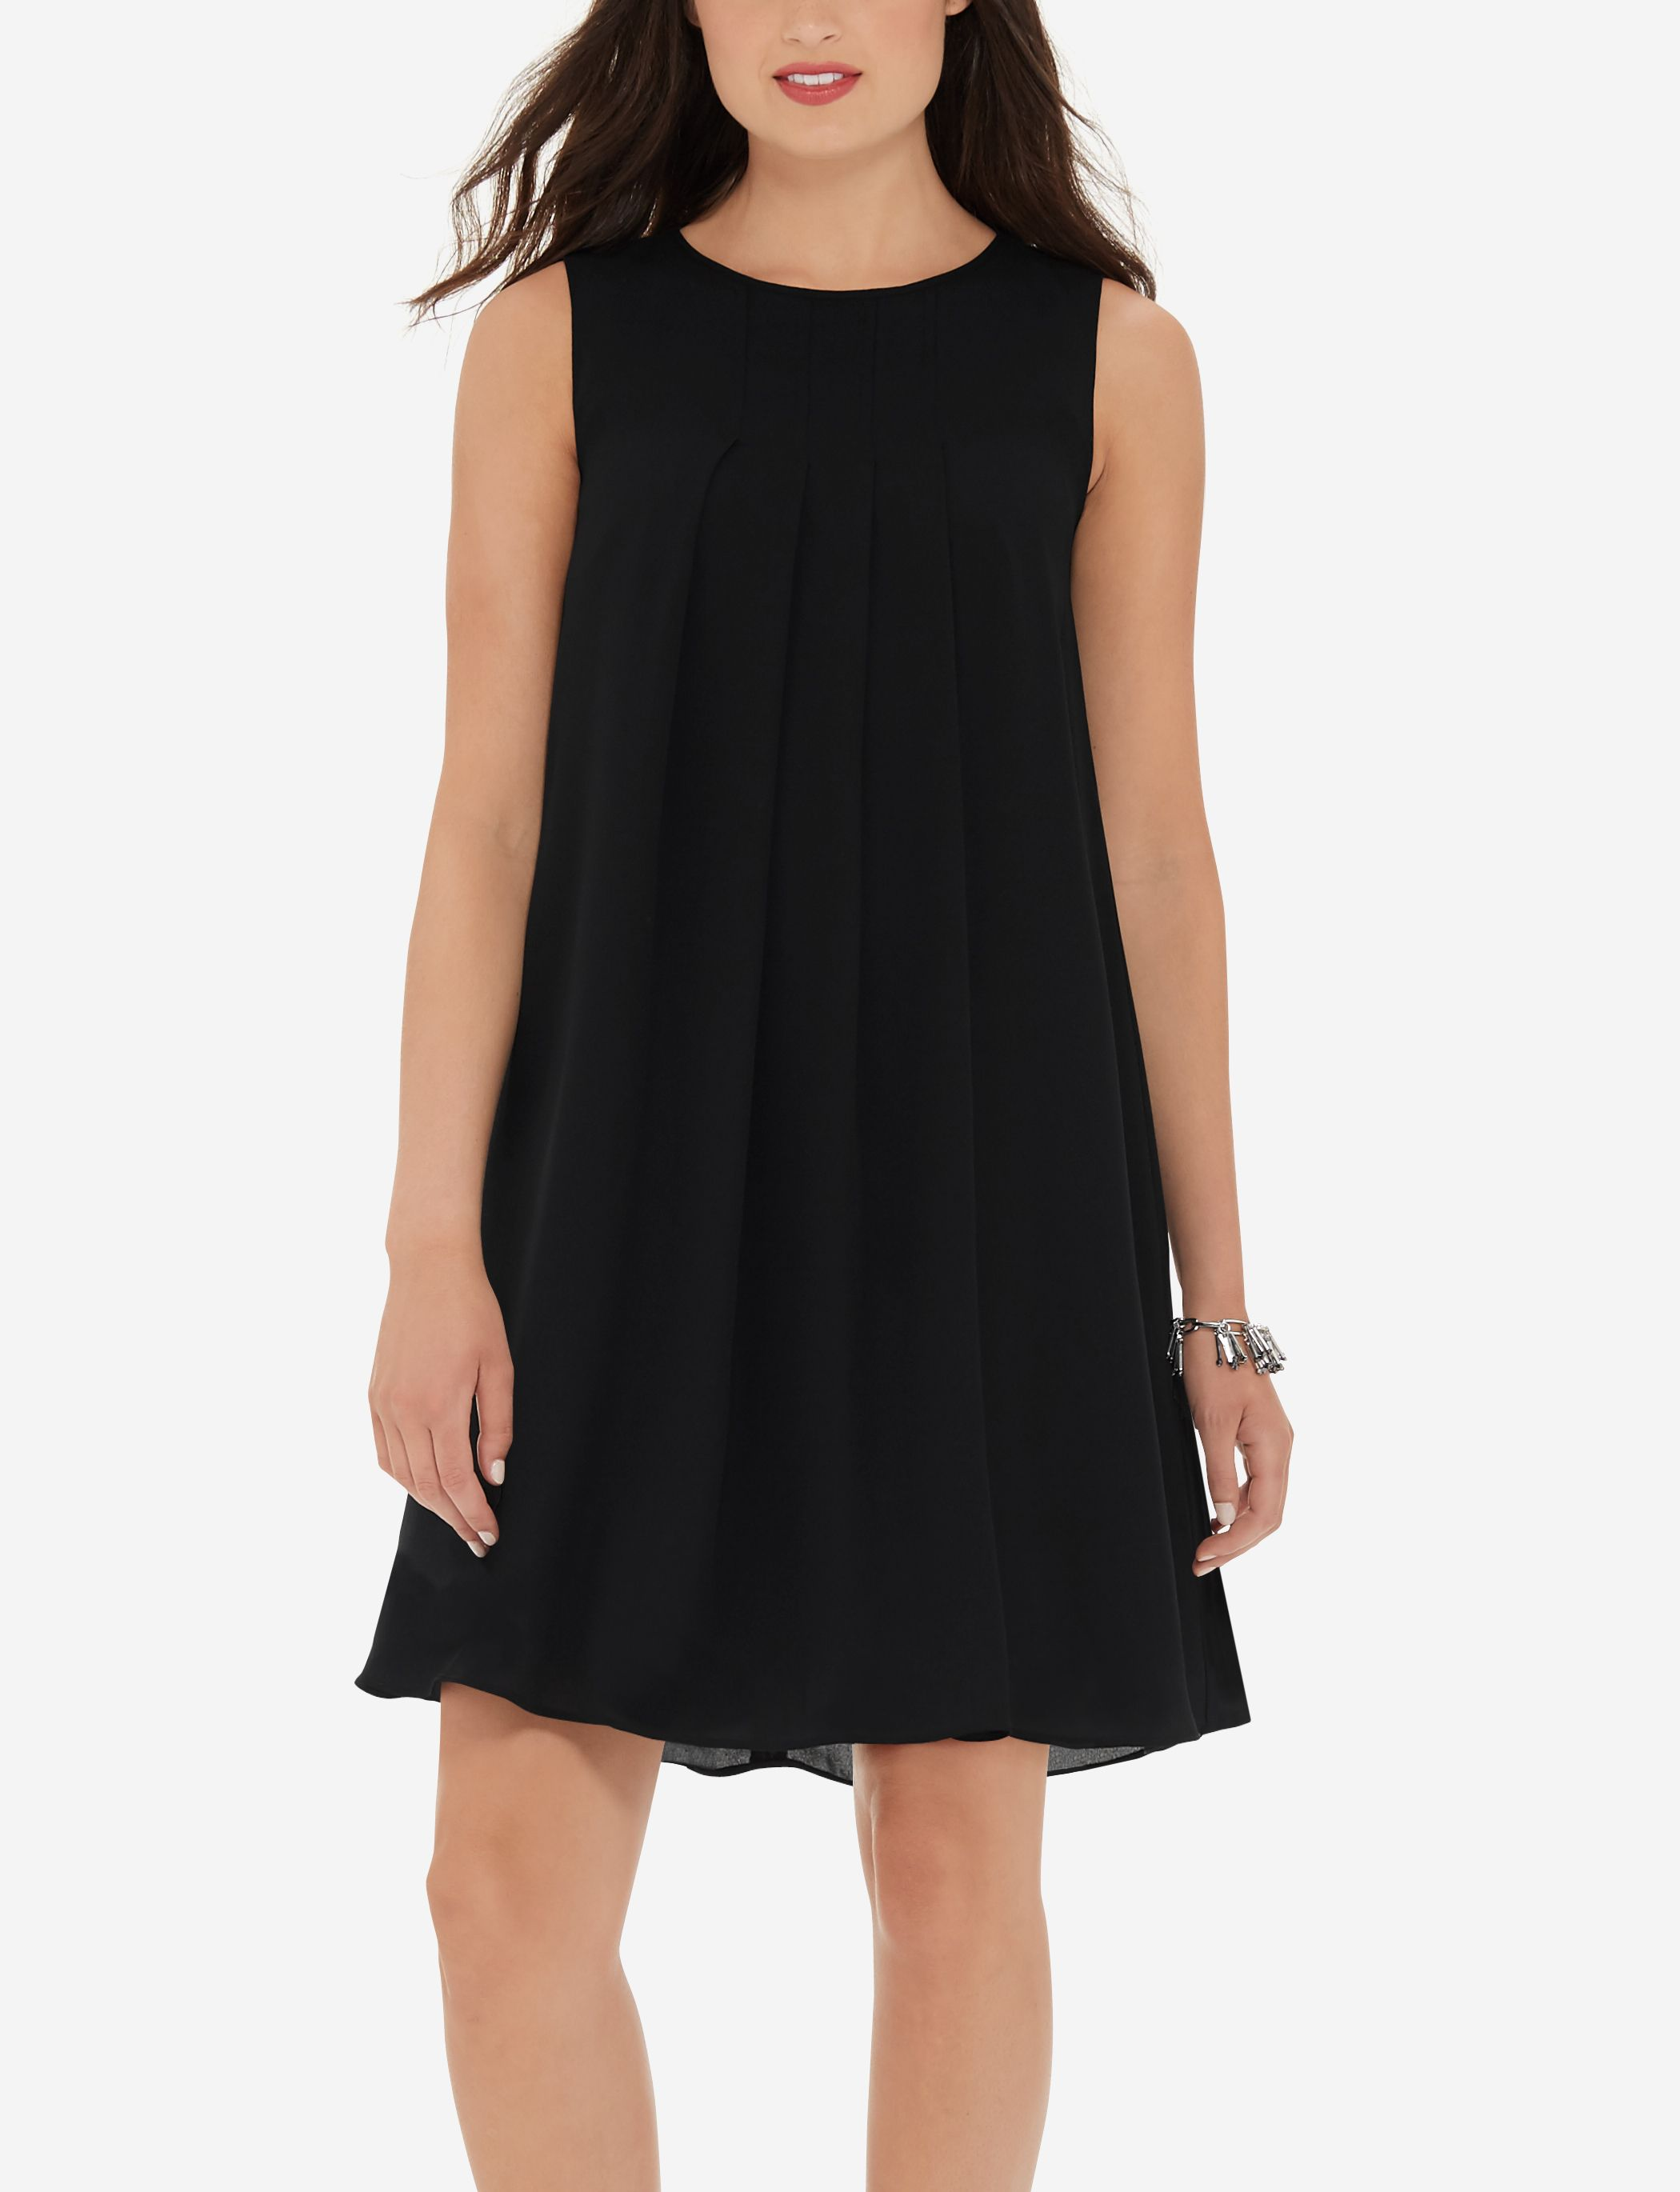 Lovely pleats add extra allure to this sleeveless flowy dress.